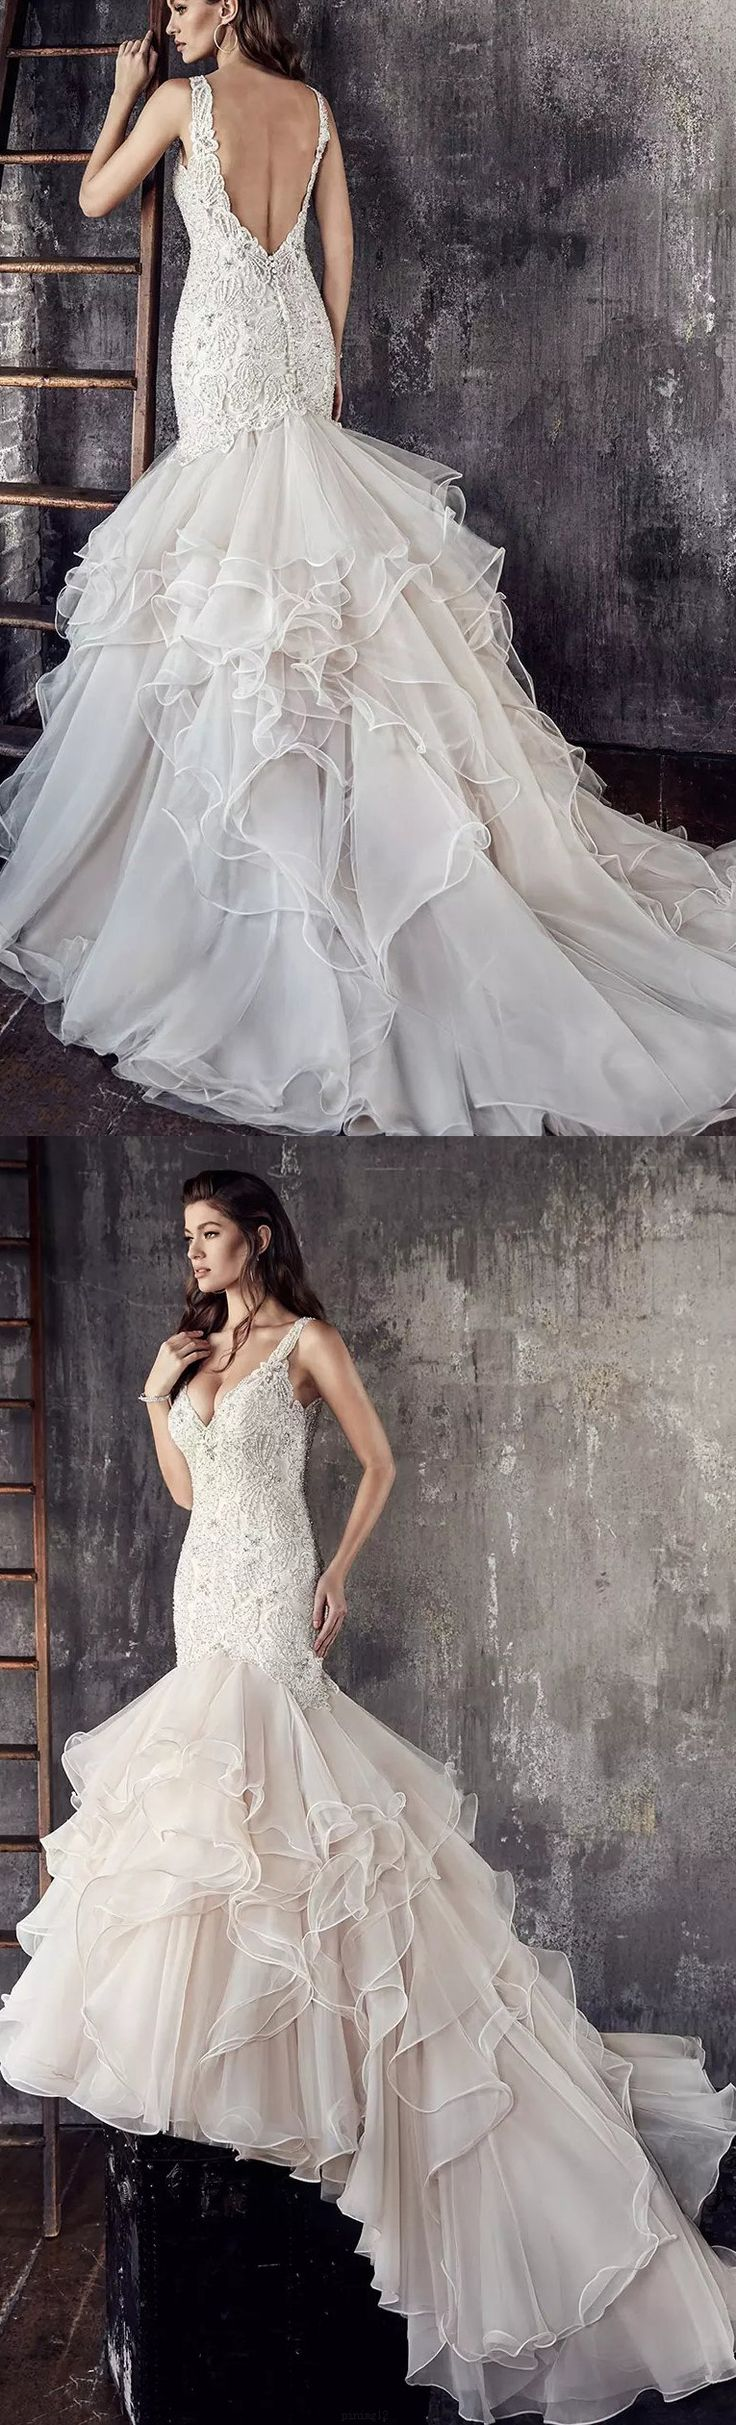 786 best Traumkleider images on Pinterest | Evening gowns, Beautiful ...